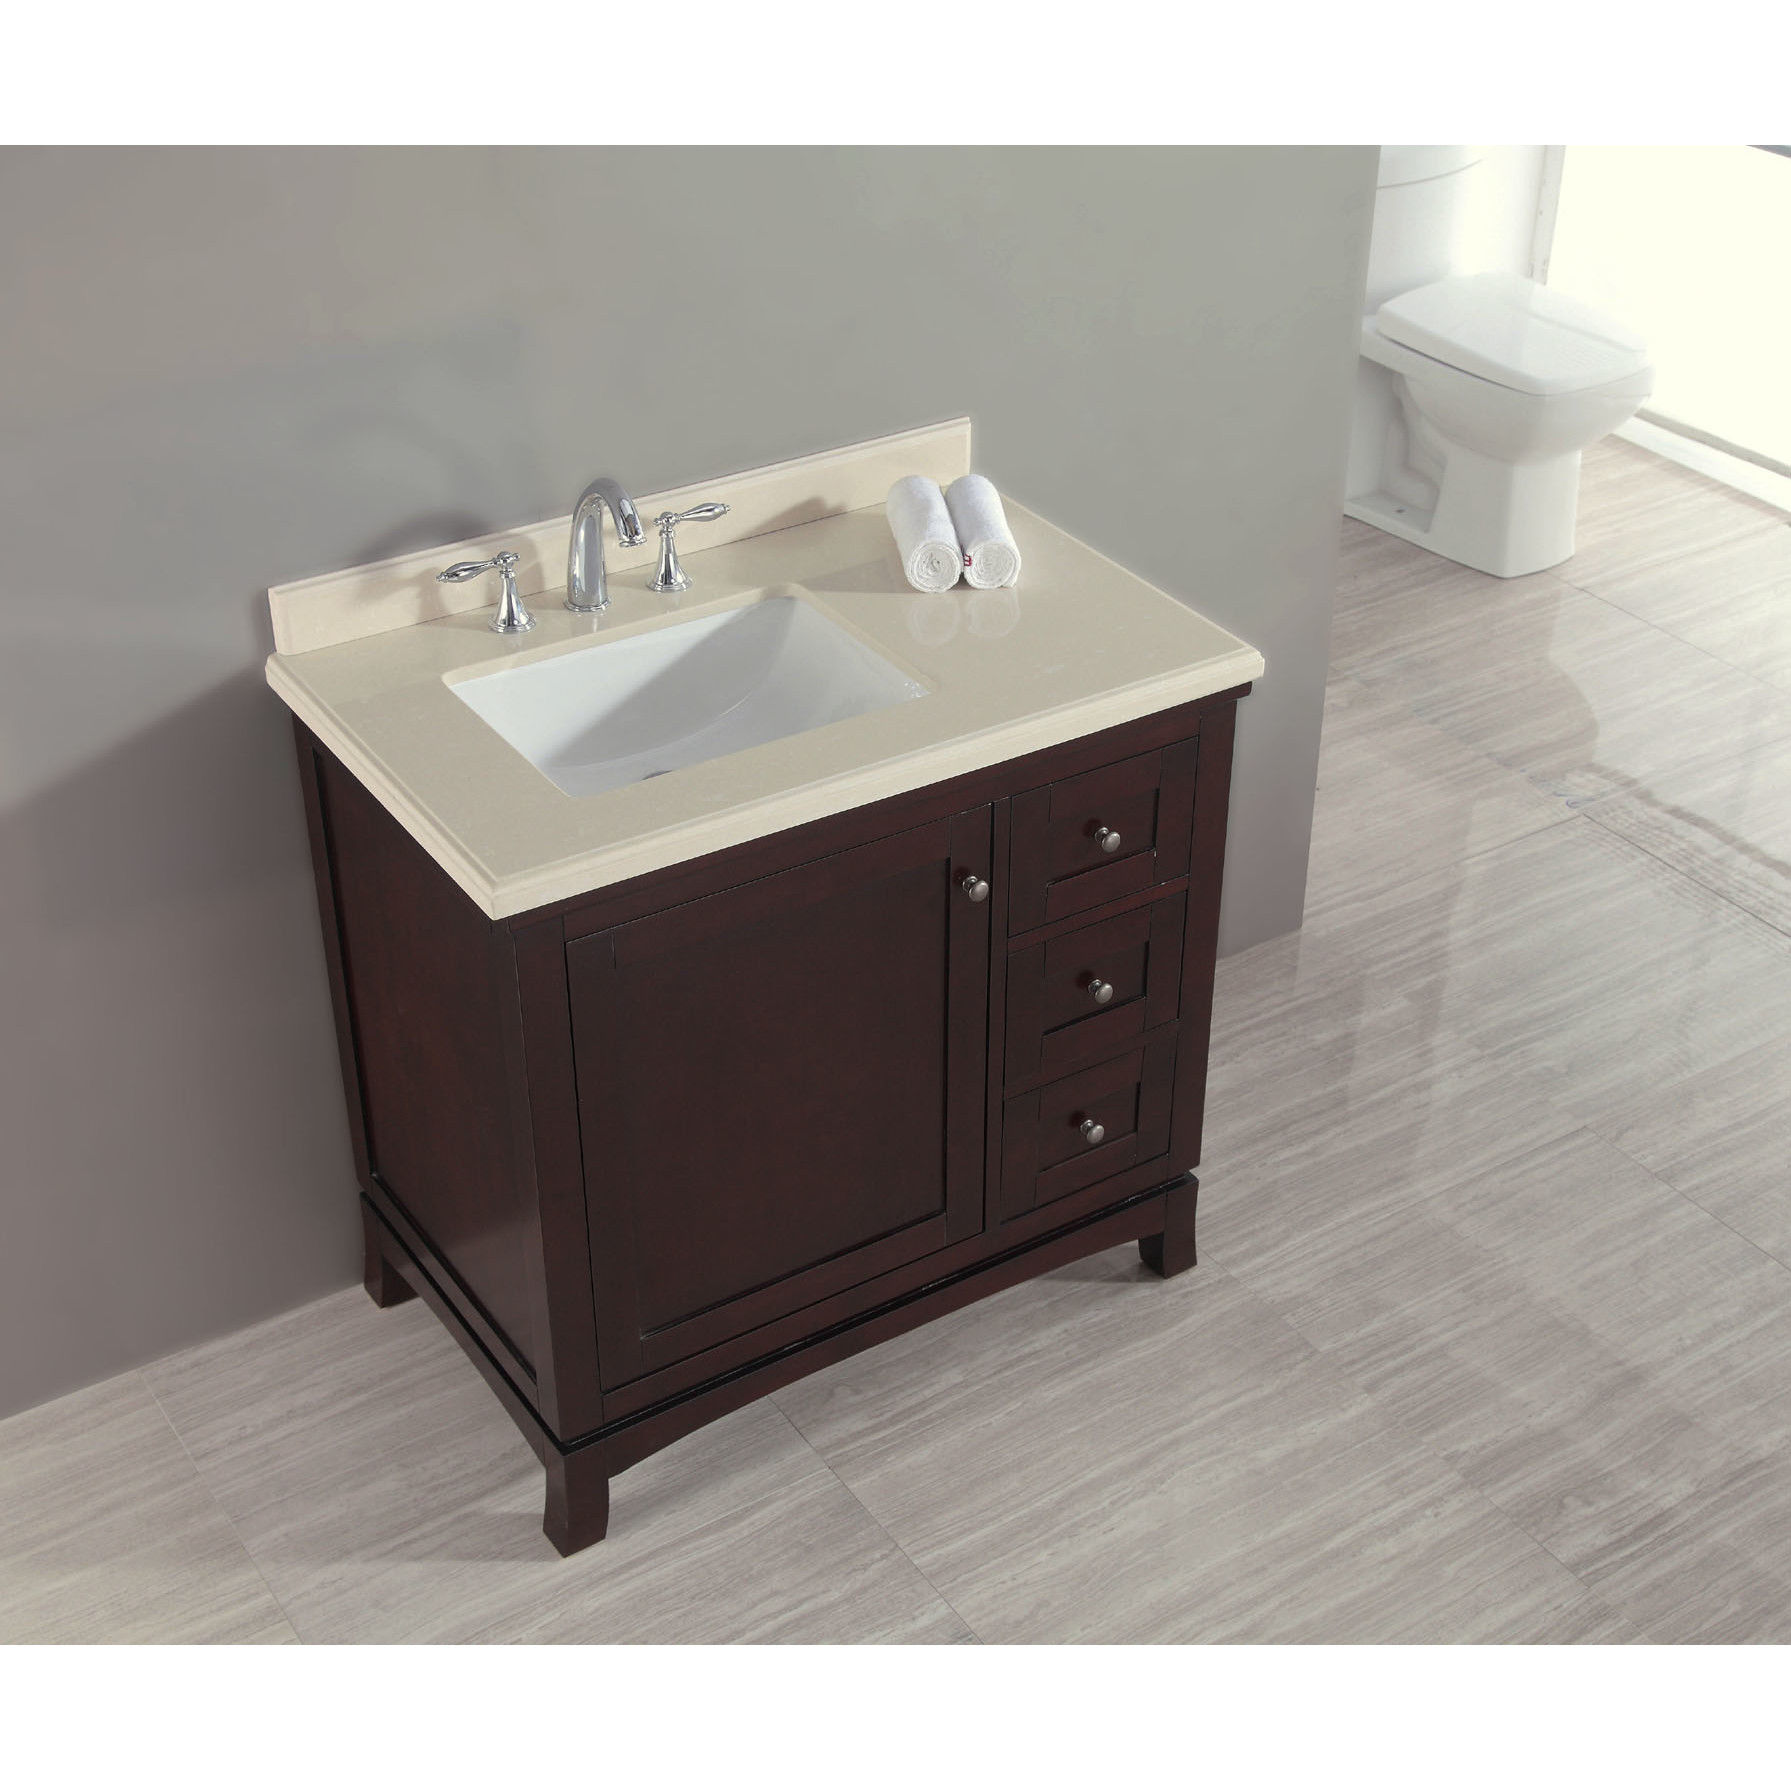 Elegant Wayfair Bathroom Vanities Online Home Sweet Home